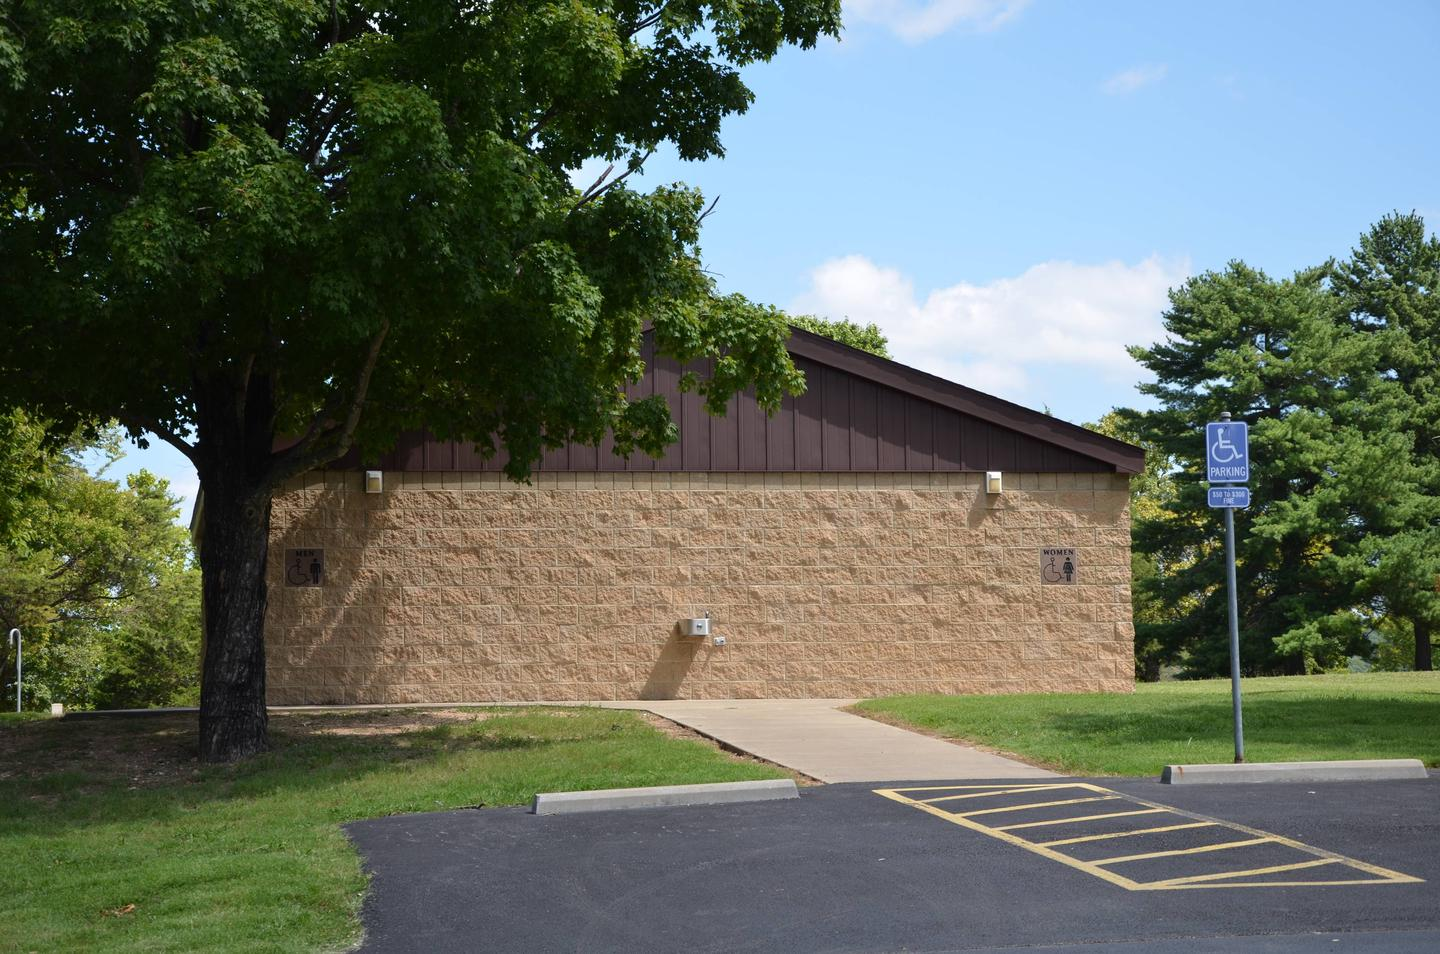 MILL CREEK (MISSOURI)Main Shower House and Restrooms